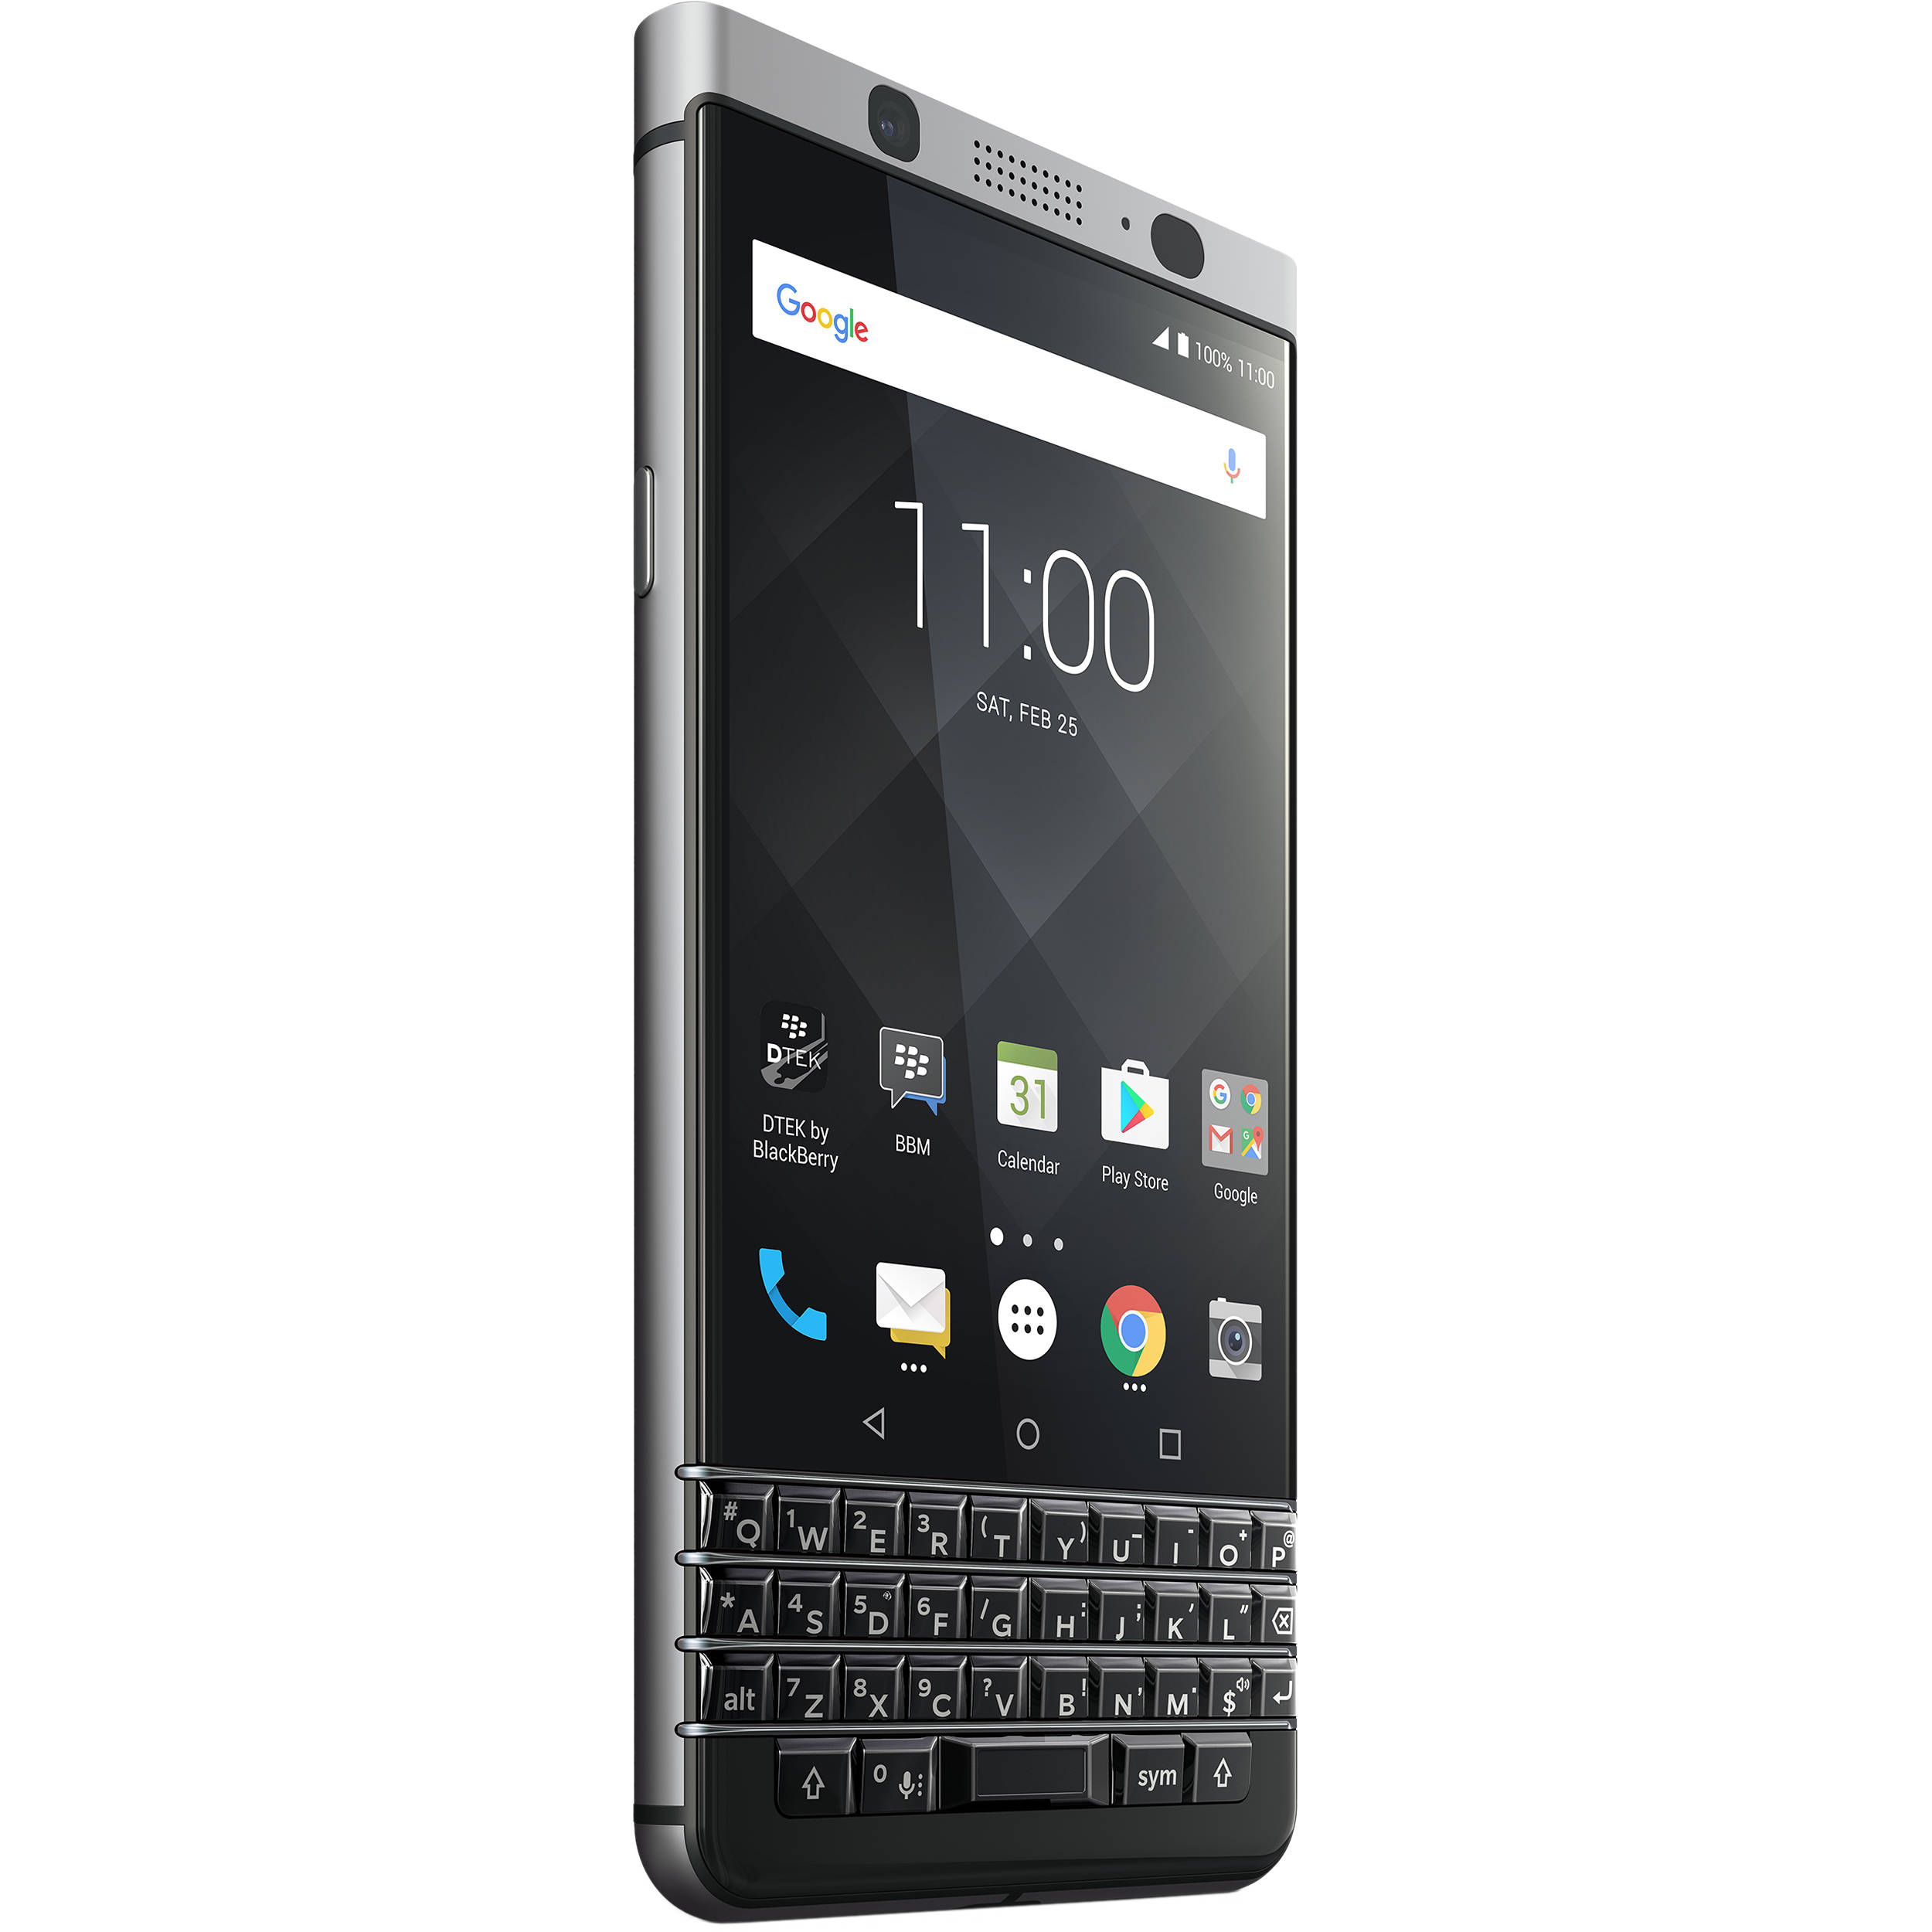 Blackberry keyone bbb100 3 32gb smartphone prd 63118 001 bh blackberry keyone bbb100 3 32gb smartphone verizon reheart Choice Image